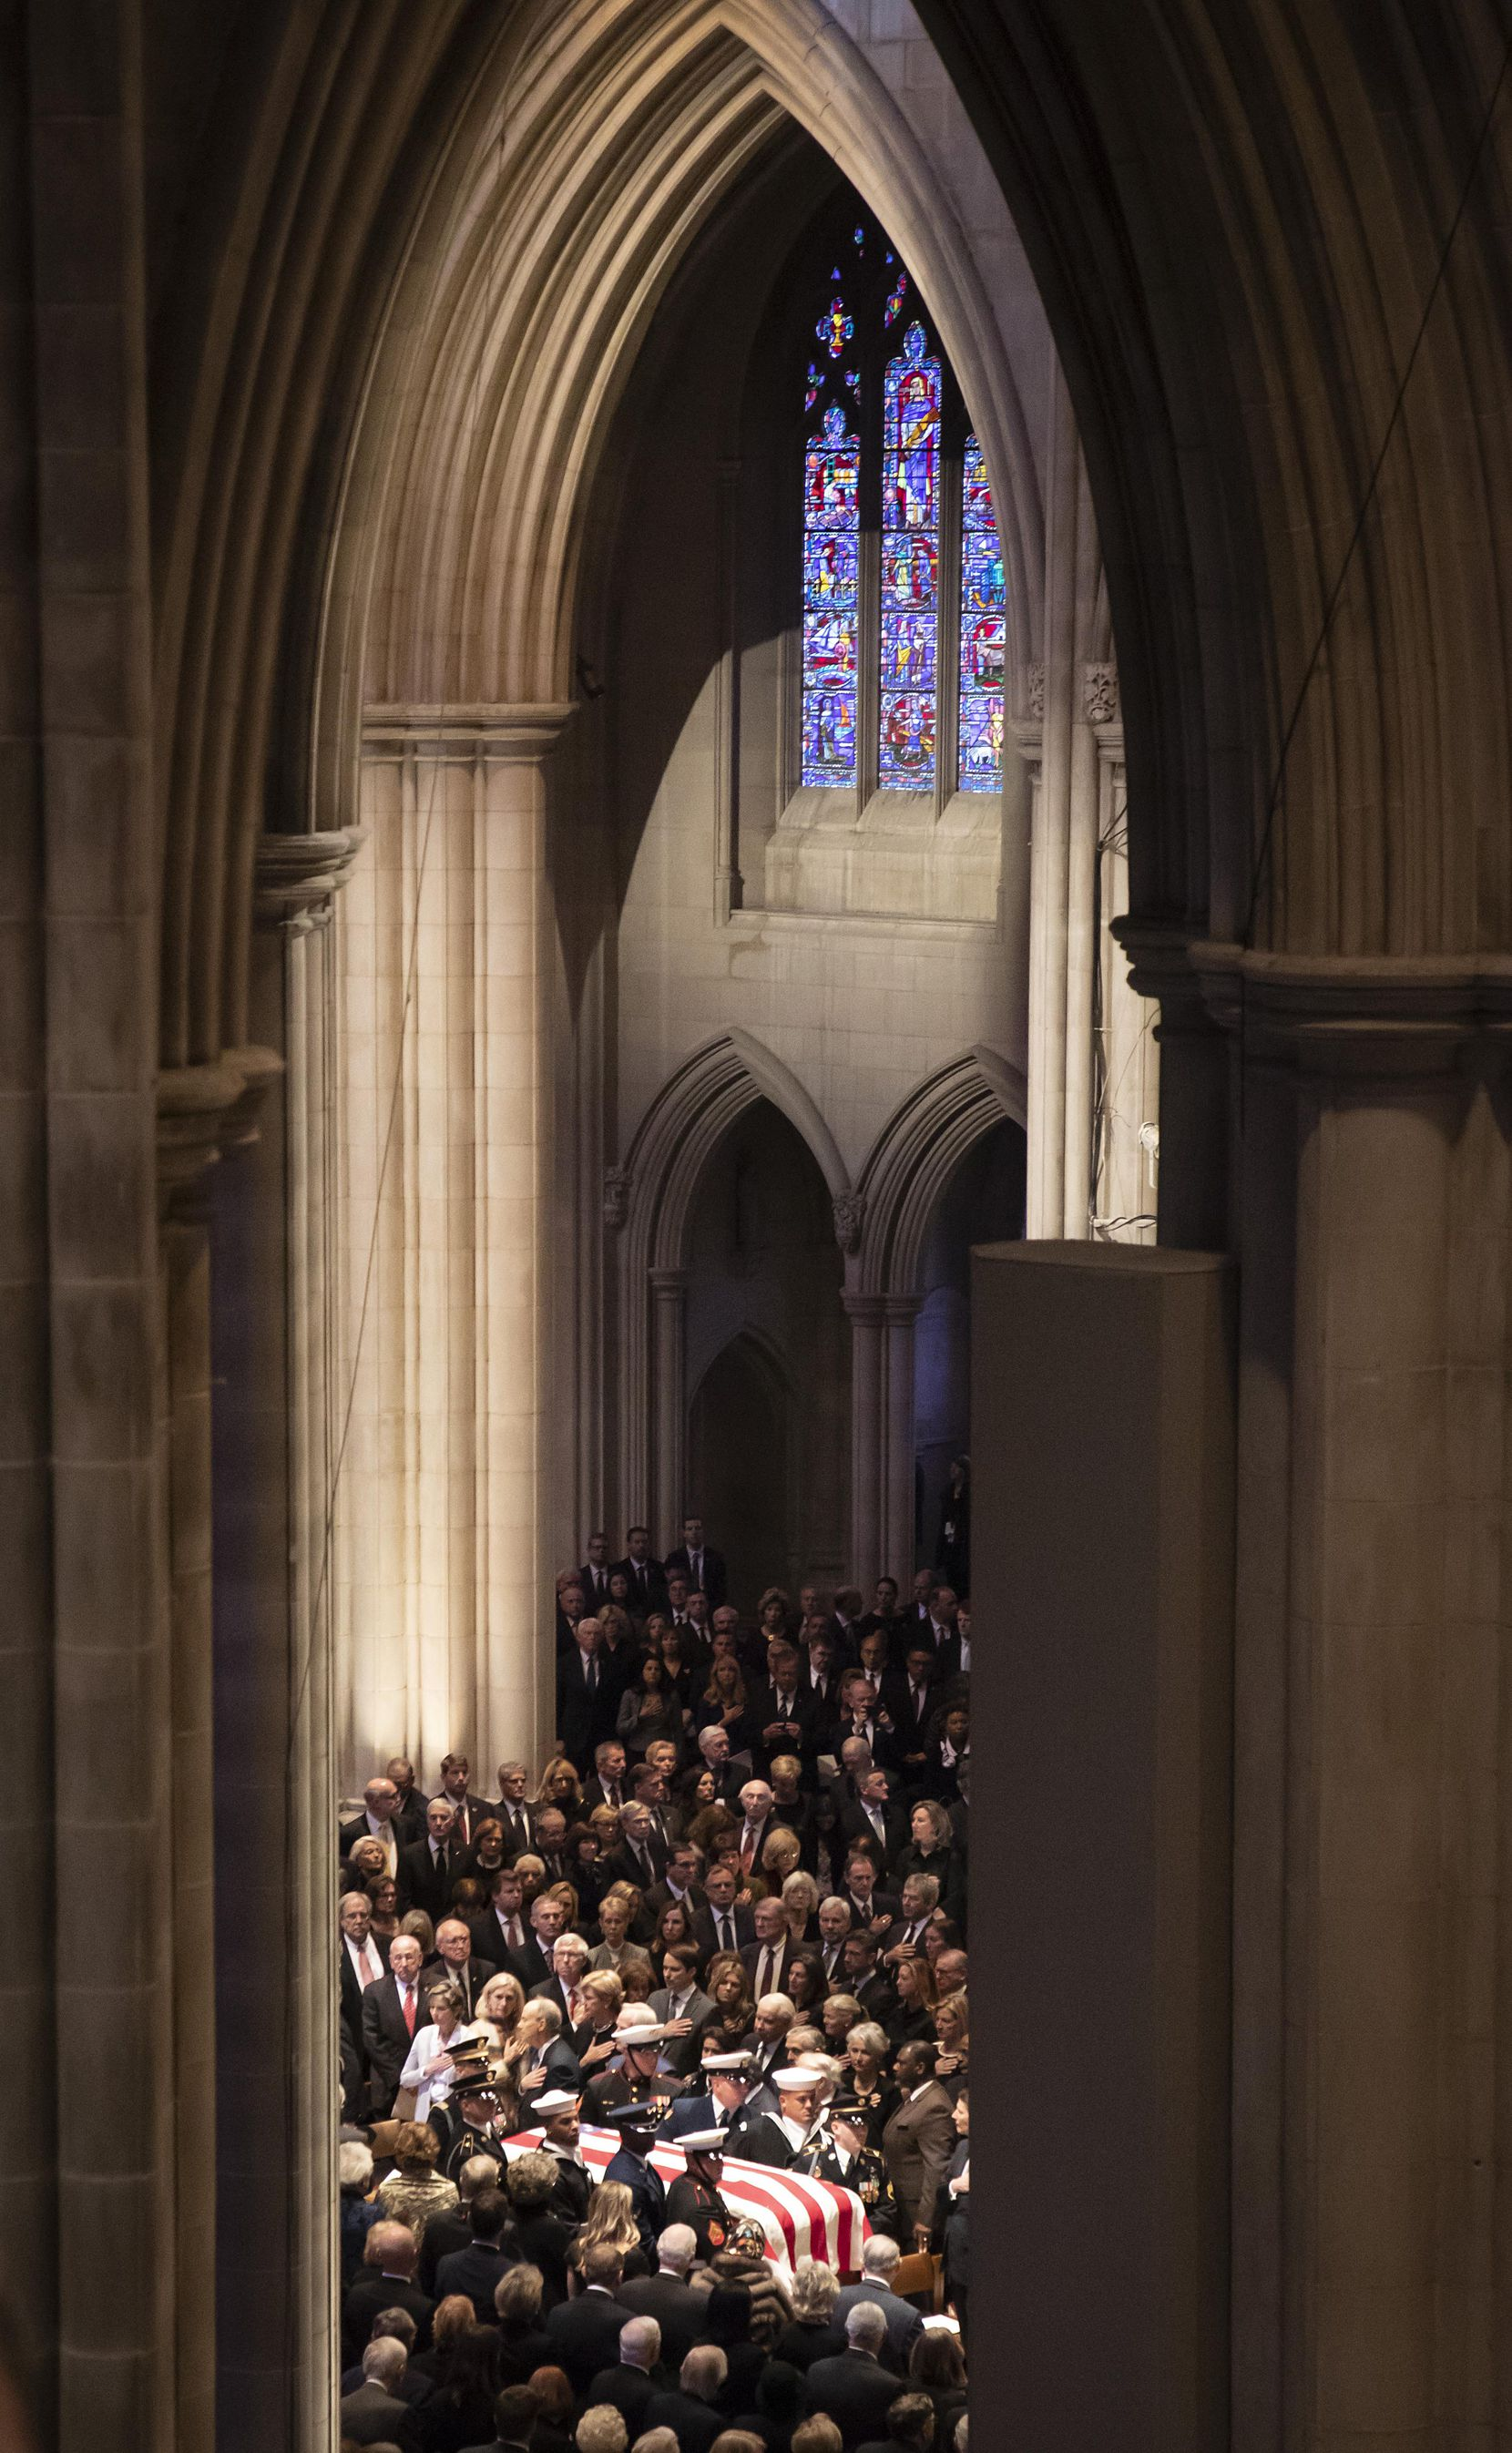 A military honor guard carries the flag-draped casket into the Washington National Cathedral at the beginning of the State Funeral for George H.W. Bush, the 41st President of the United States, on Wednesday, Dec. 5, 2018, in Washington. (Smiley N. Pool/The Dallas Morning News)